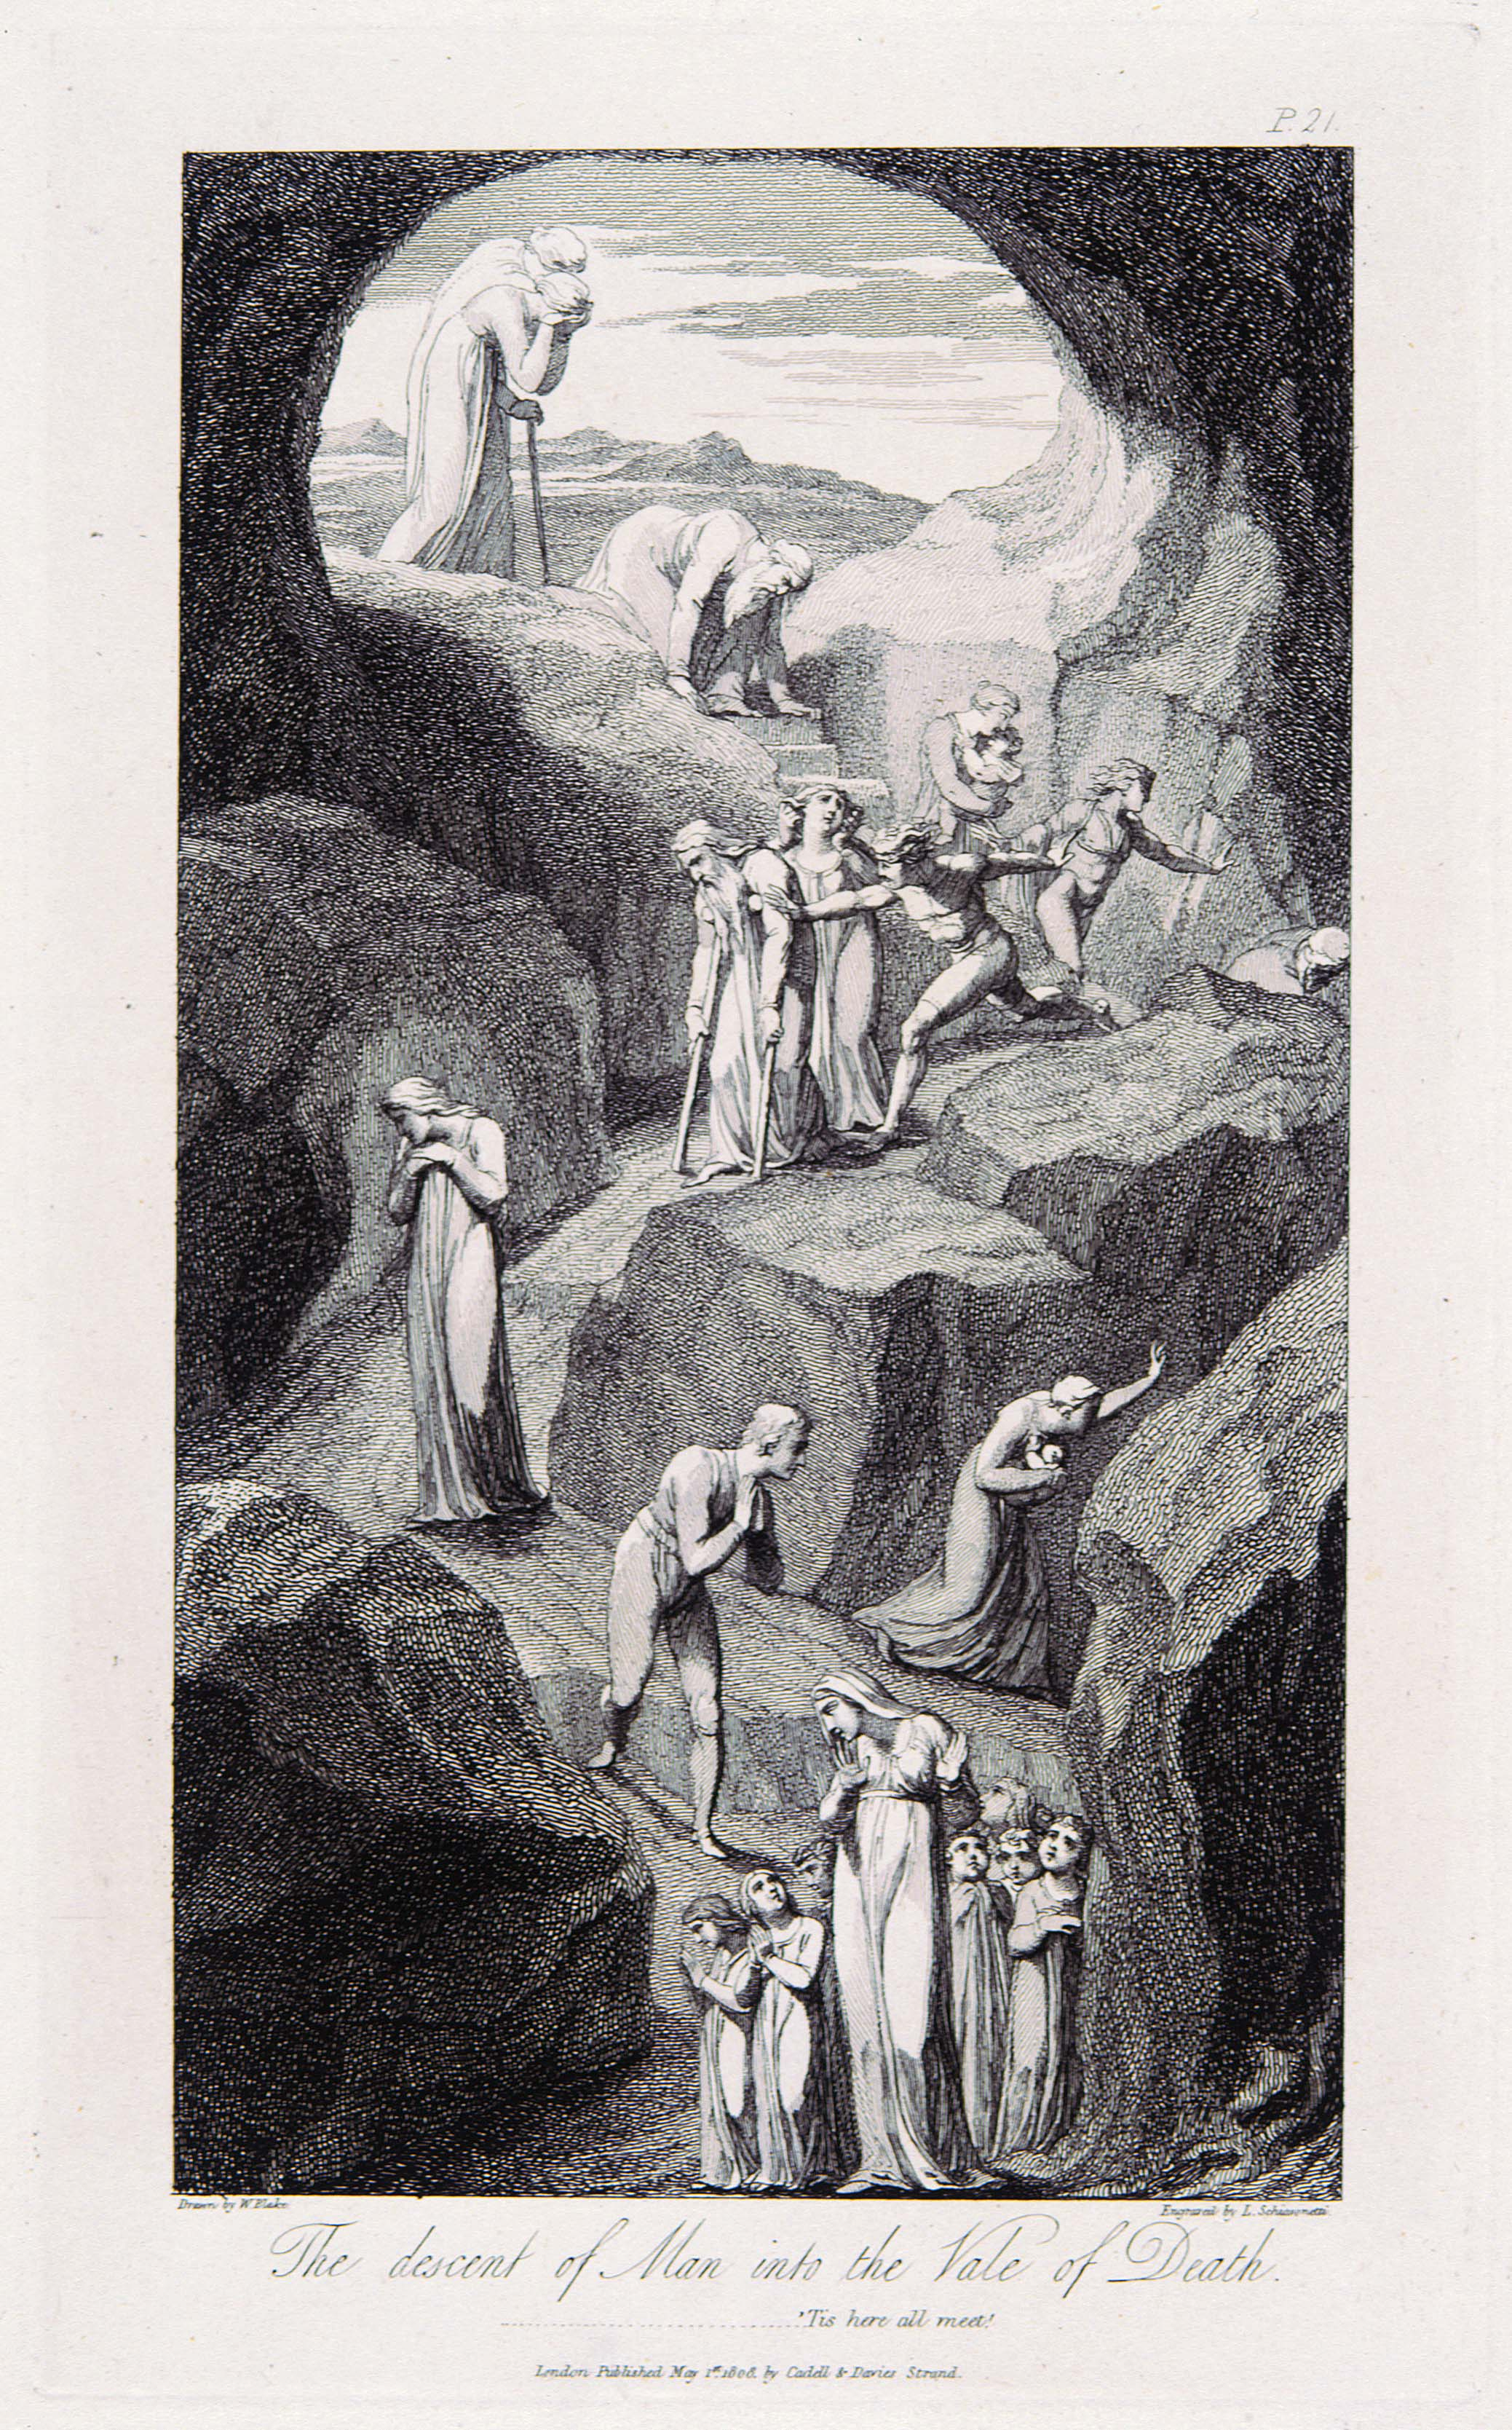 P.21. Drawn by W. Blake. Etched by L. Schiavonetti. The descent of Man into the Vale of Death.  ...............'Tis here all meet!  London Published May 1st. 1808, by Cadell & Davies Strand.